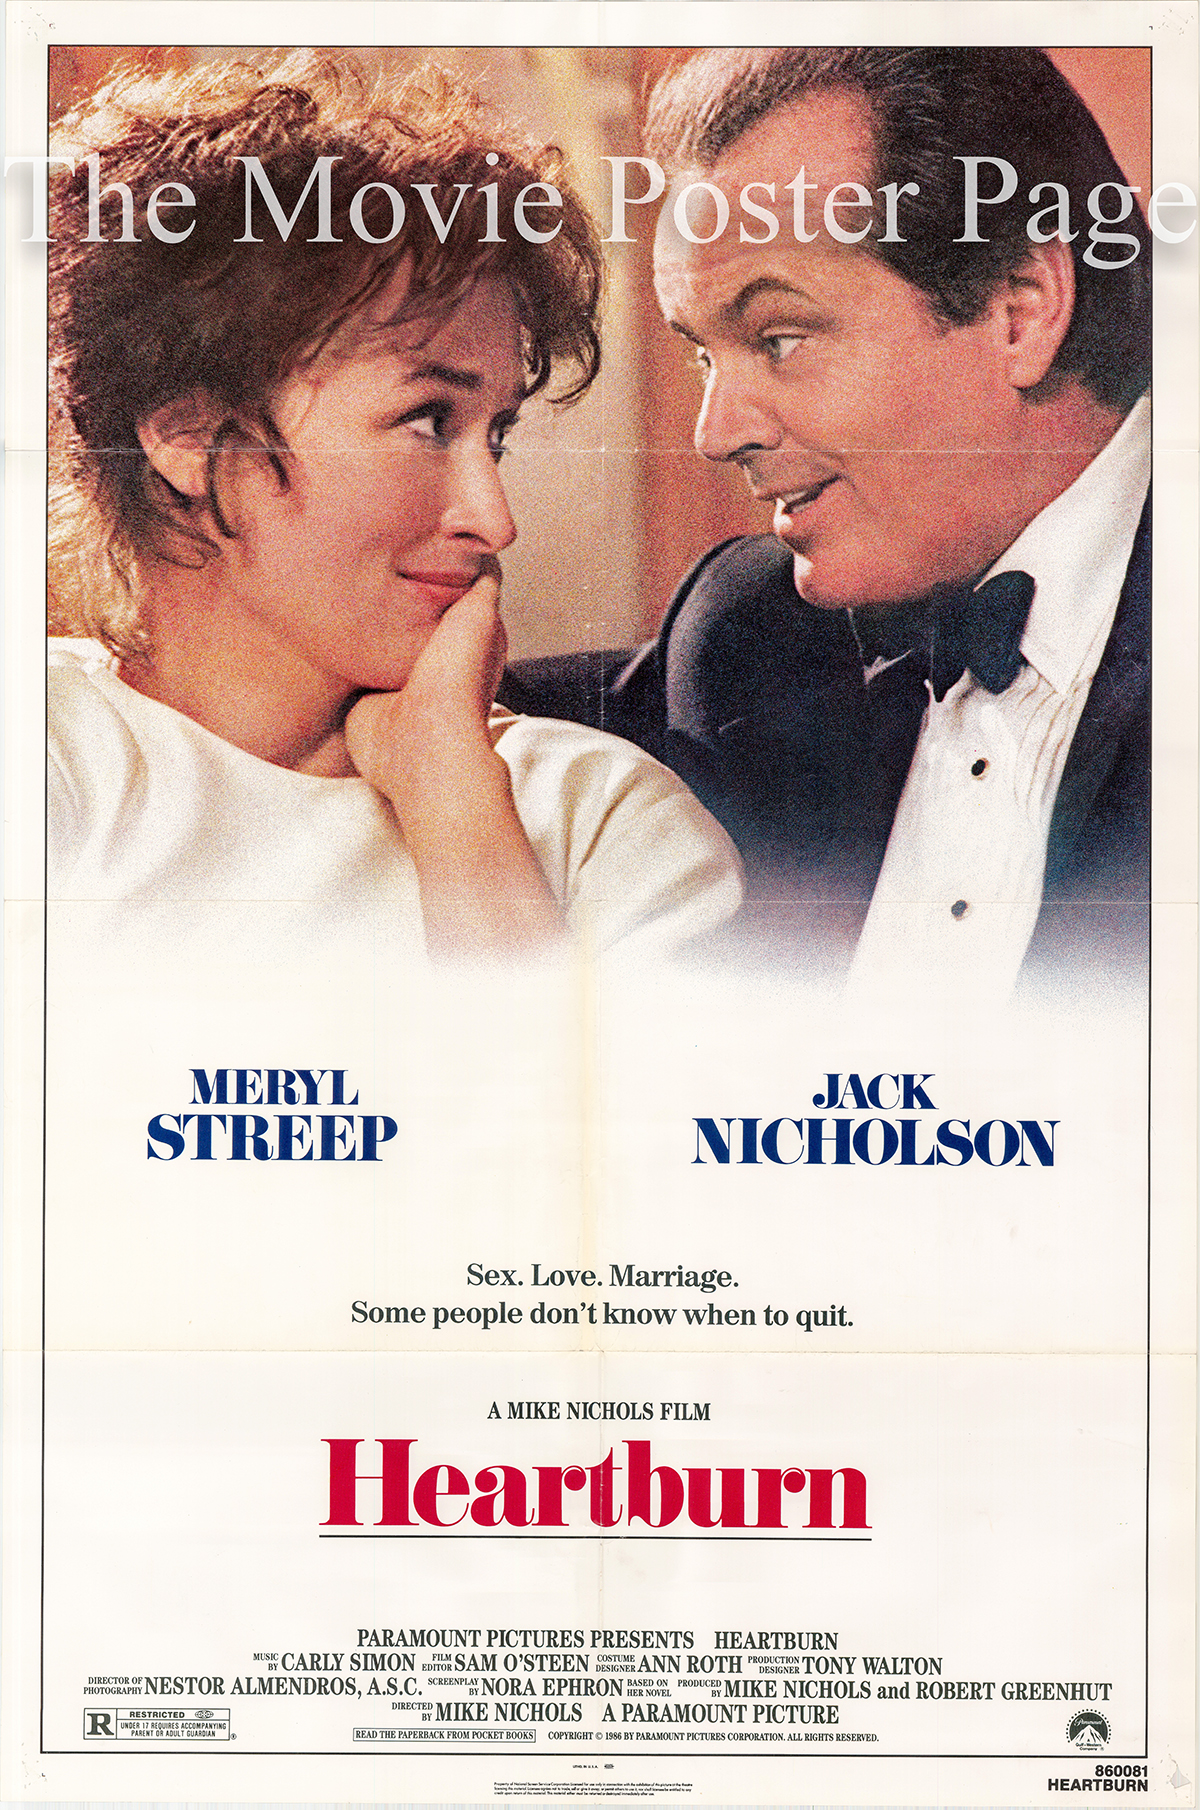 Pictured is a US one-sheet poster for the 1986 Mike Nichols film Heartburn starring Jack Nicholson and Meryl Streep.